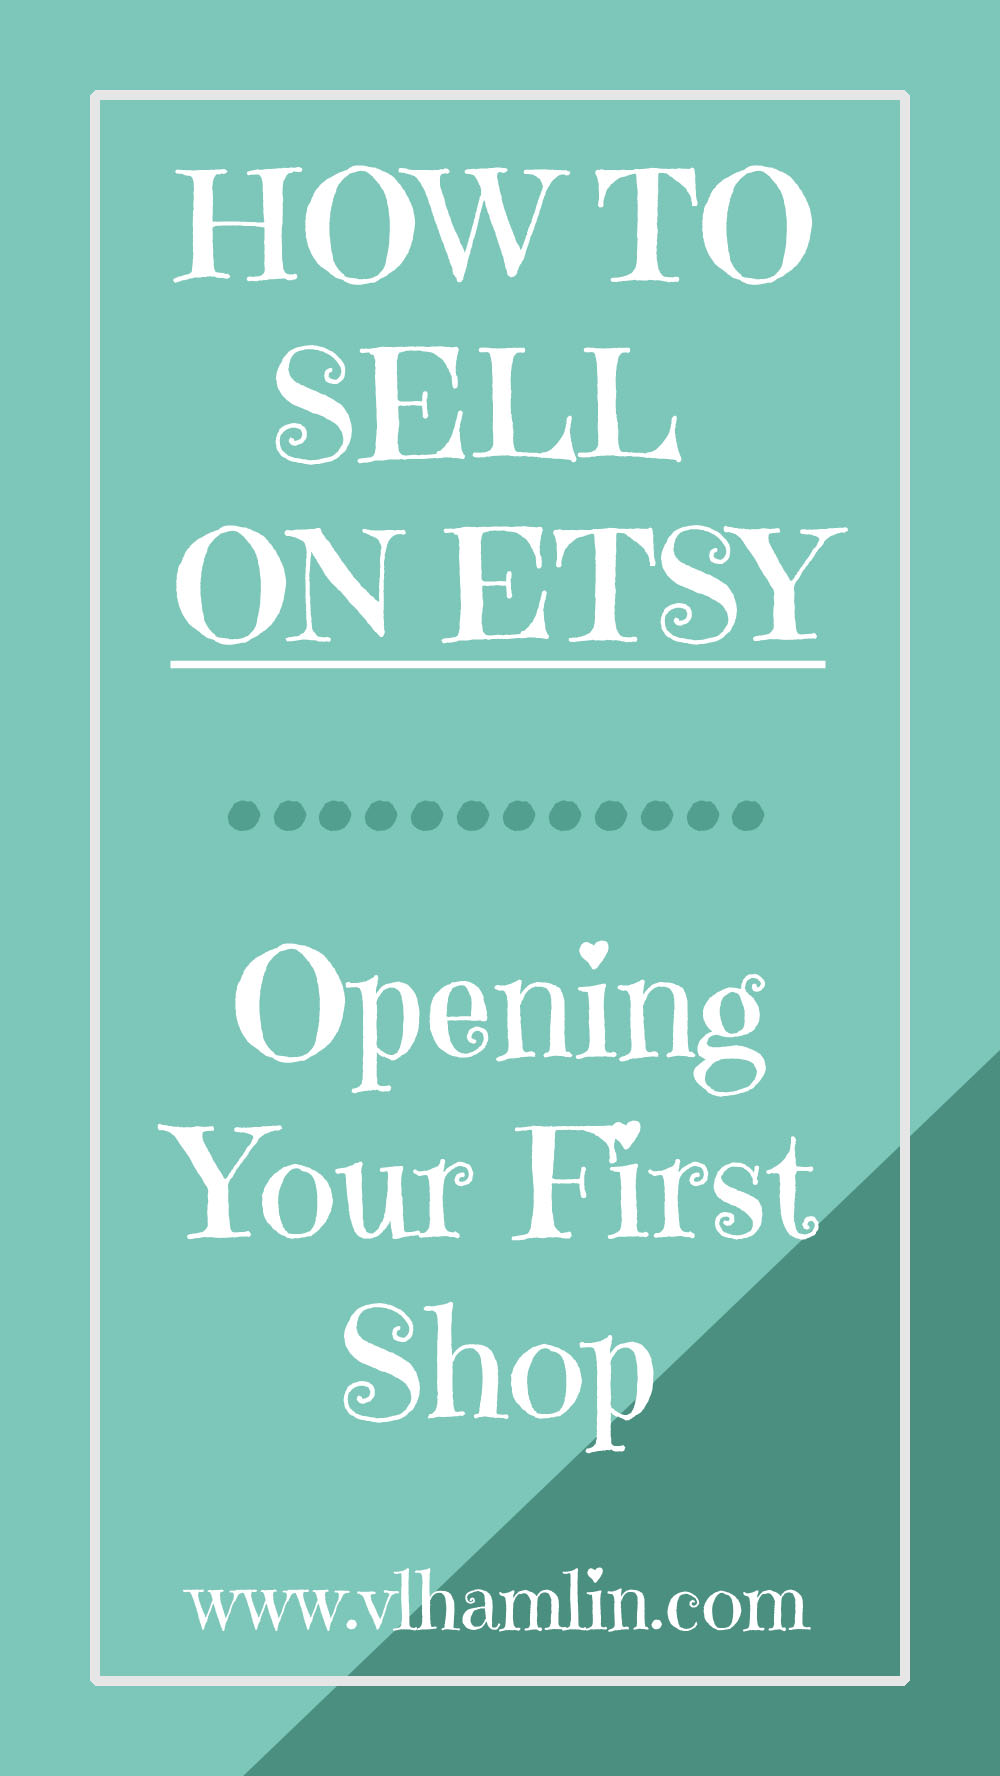 How to Sell on Etsy - Opening Your First Shop